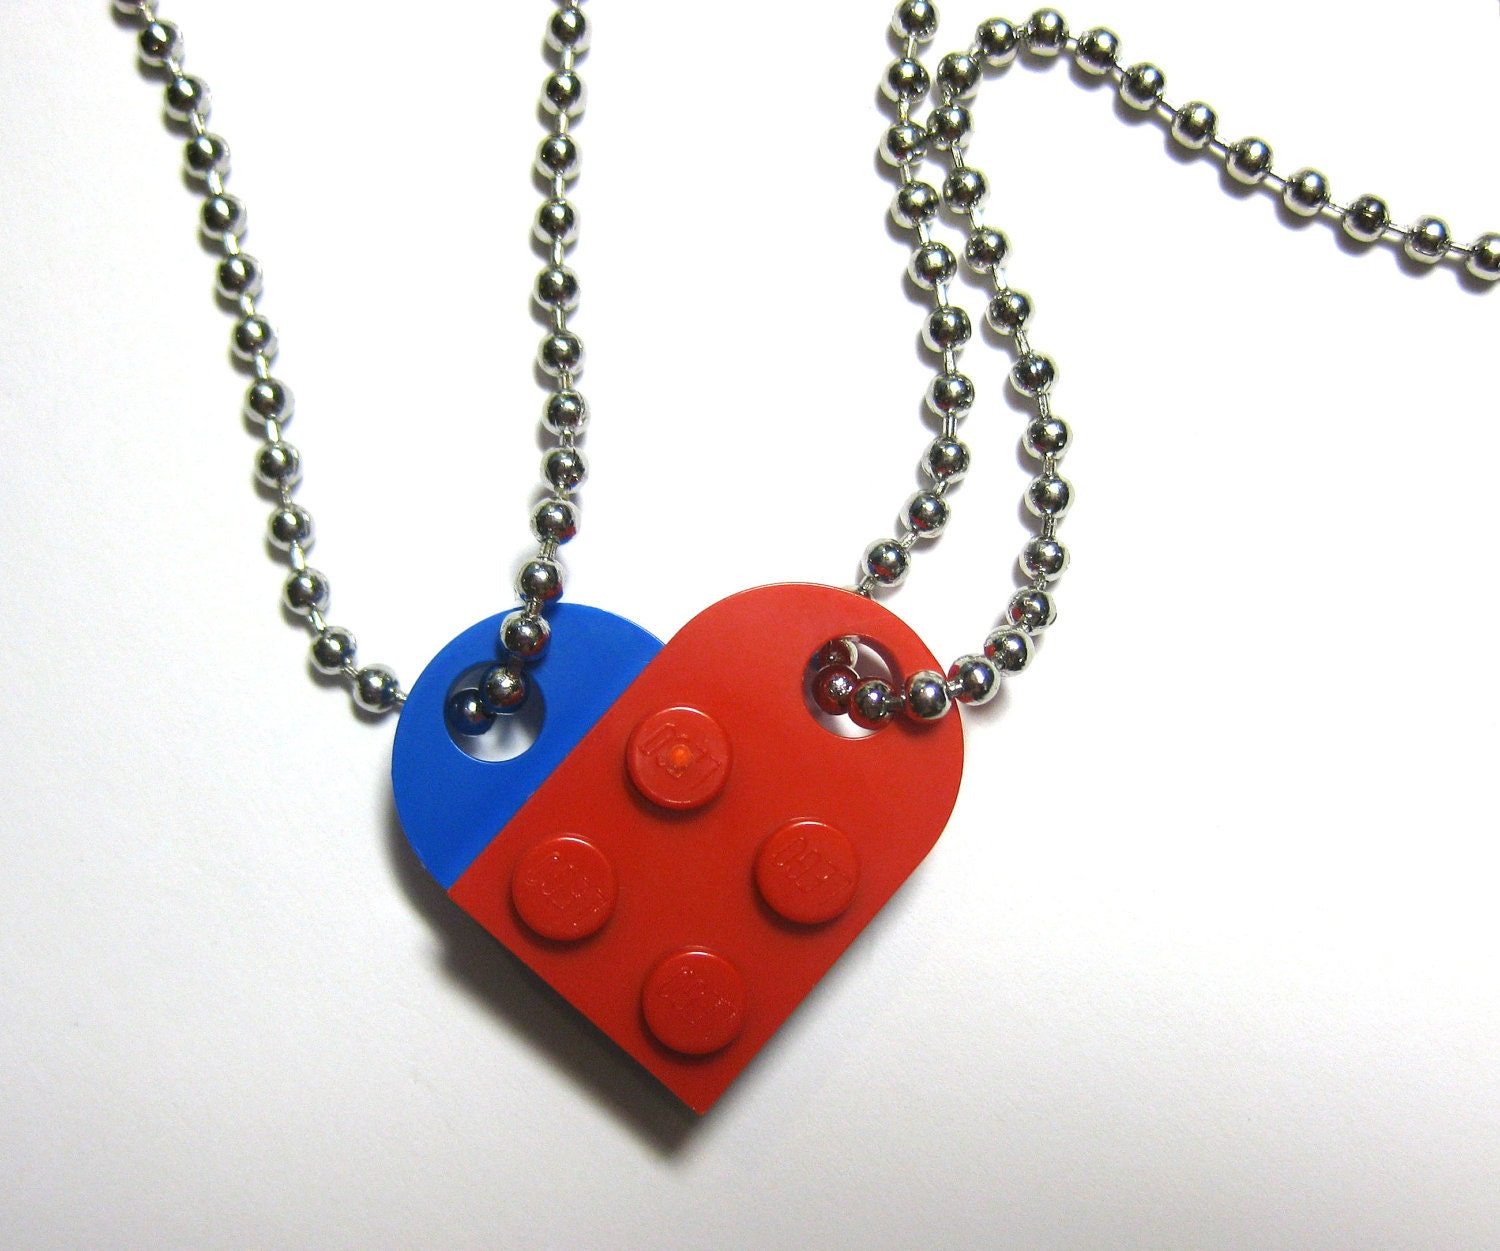 bff necklace set made of lego 174 bricks 24